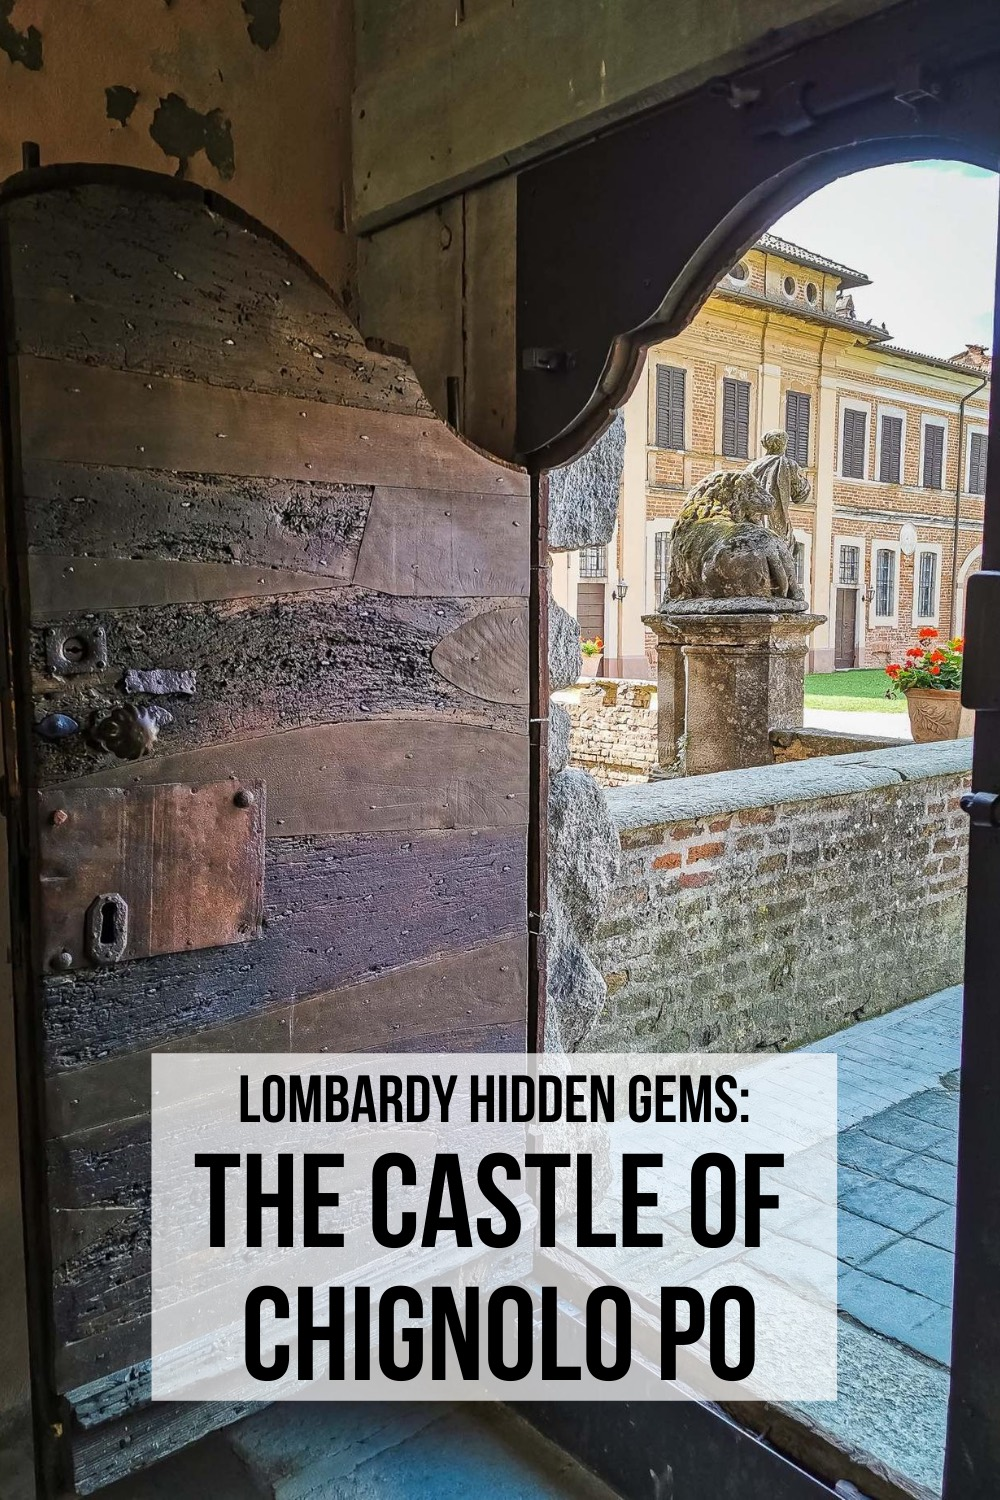 The Castle of Chignolo Po, one of Lombardy's hidden gems